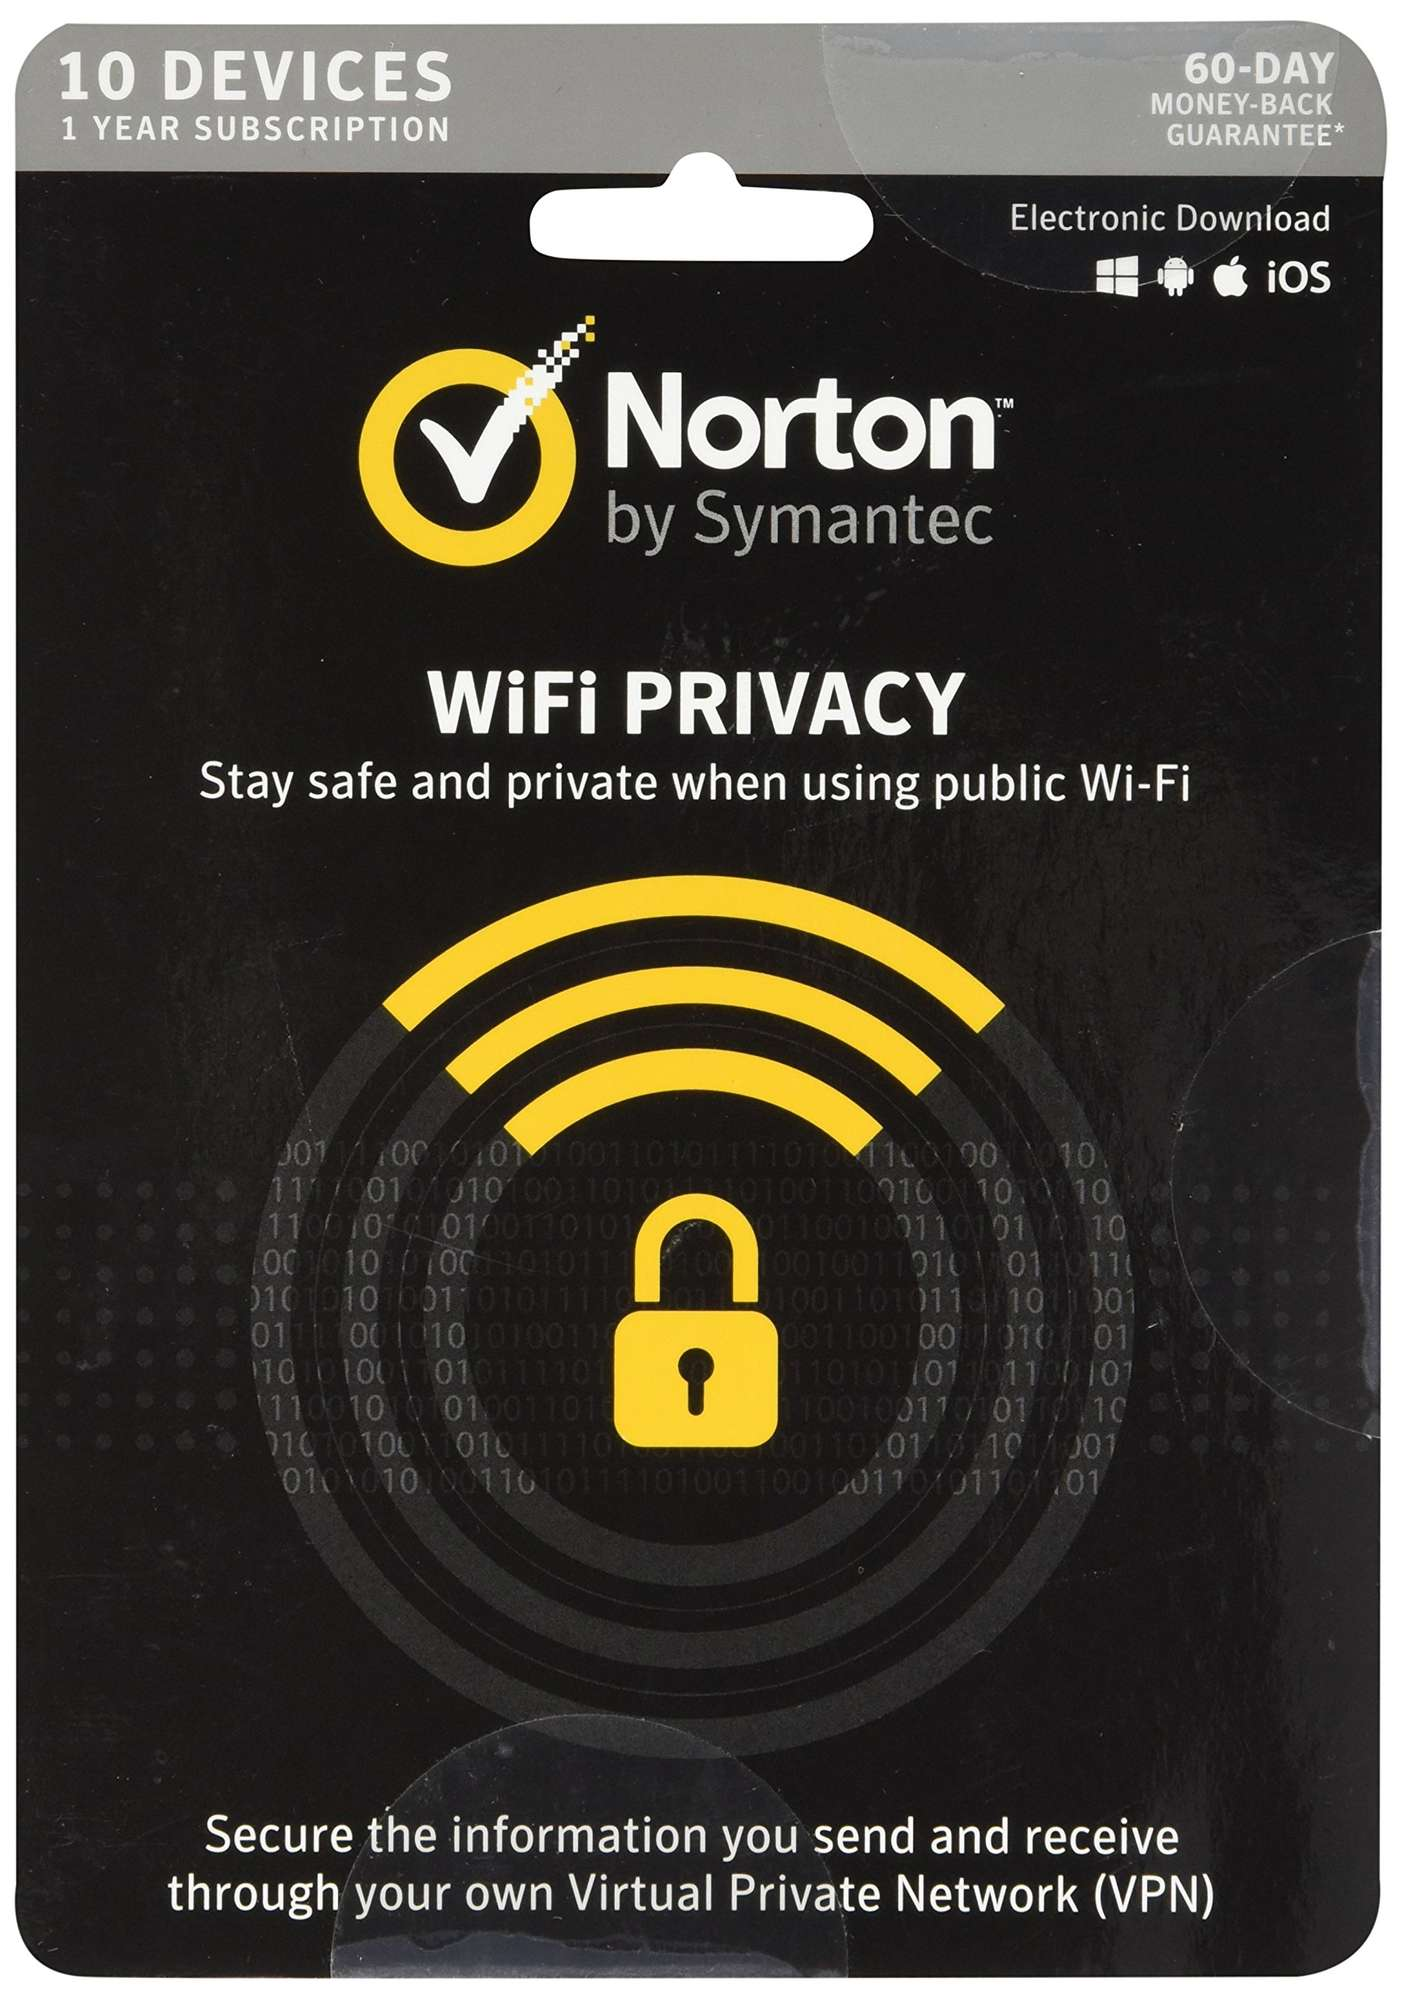 Norton Wi-Fi Privacy [SYMANTEC]